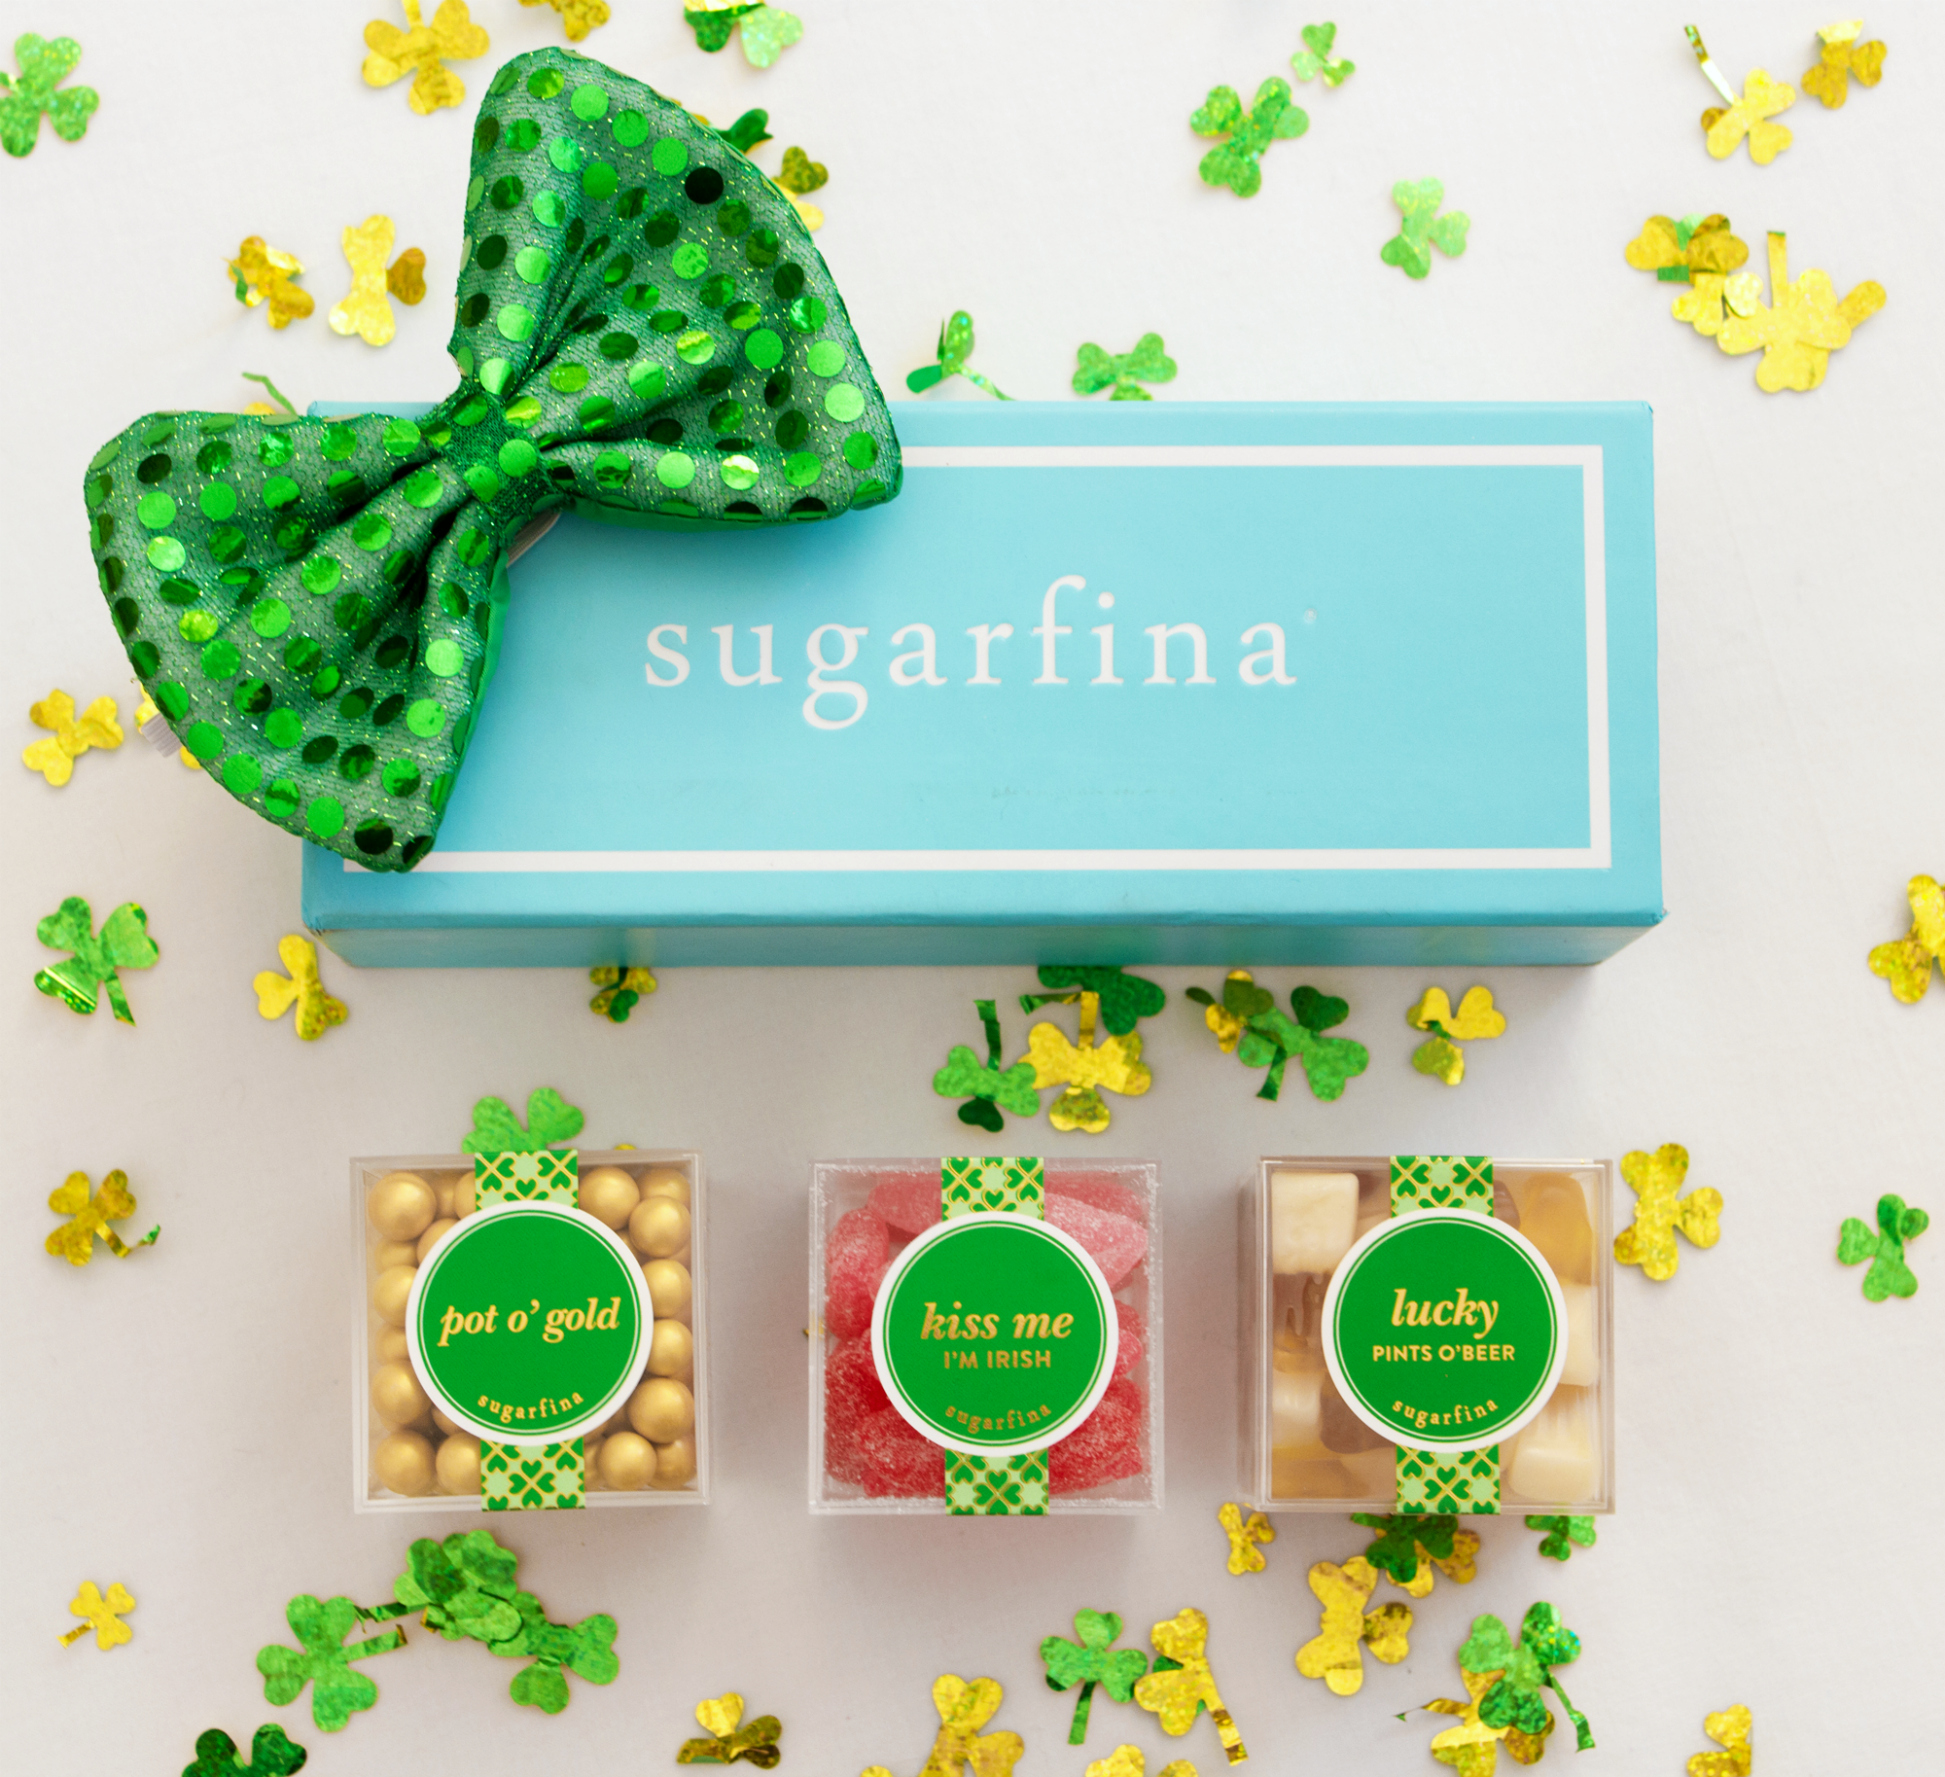 Sugarfina st patricks day candy